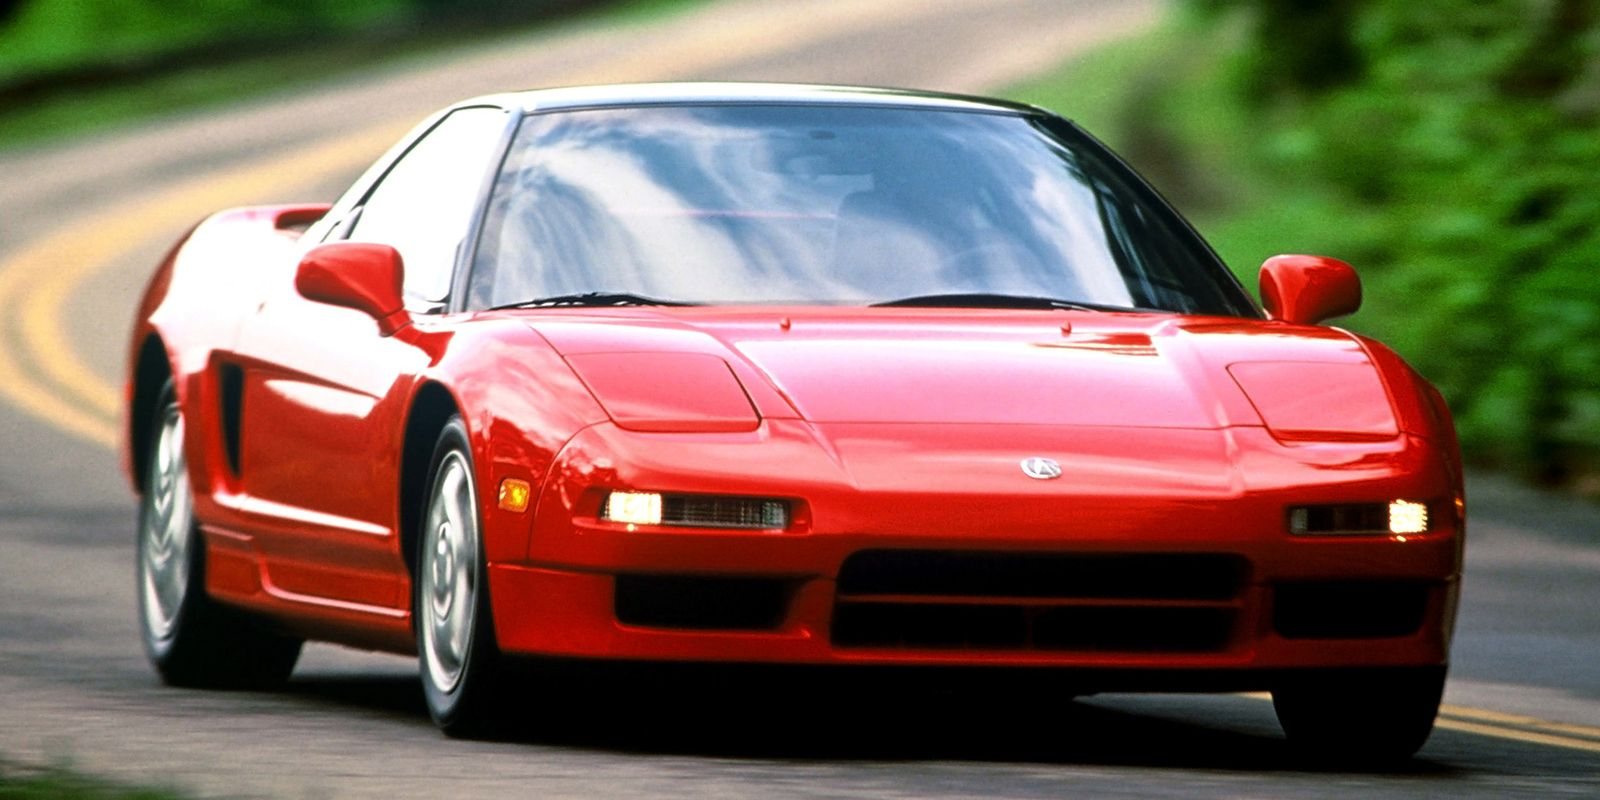 "<p>As Honda's <a href=""http://www.roadandtrack.com/new-cars/road-tests/reviews/a6900/long-term-exotic-1991-acura-nsx/"">mid-engined marvel</a>, what the NSX lacked in power, it made up in style.</p>"